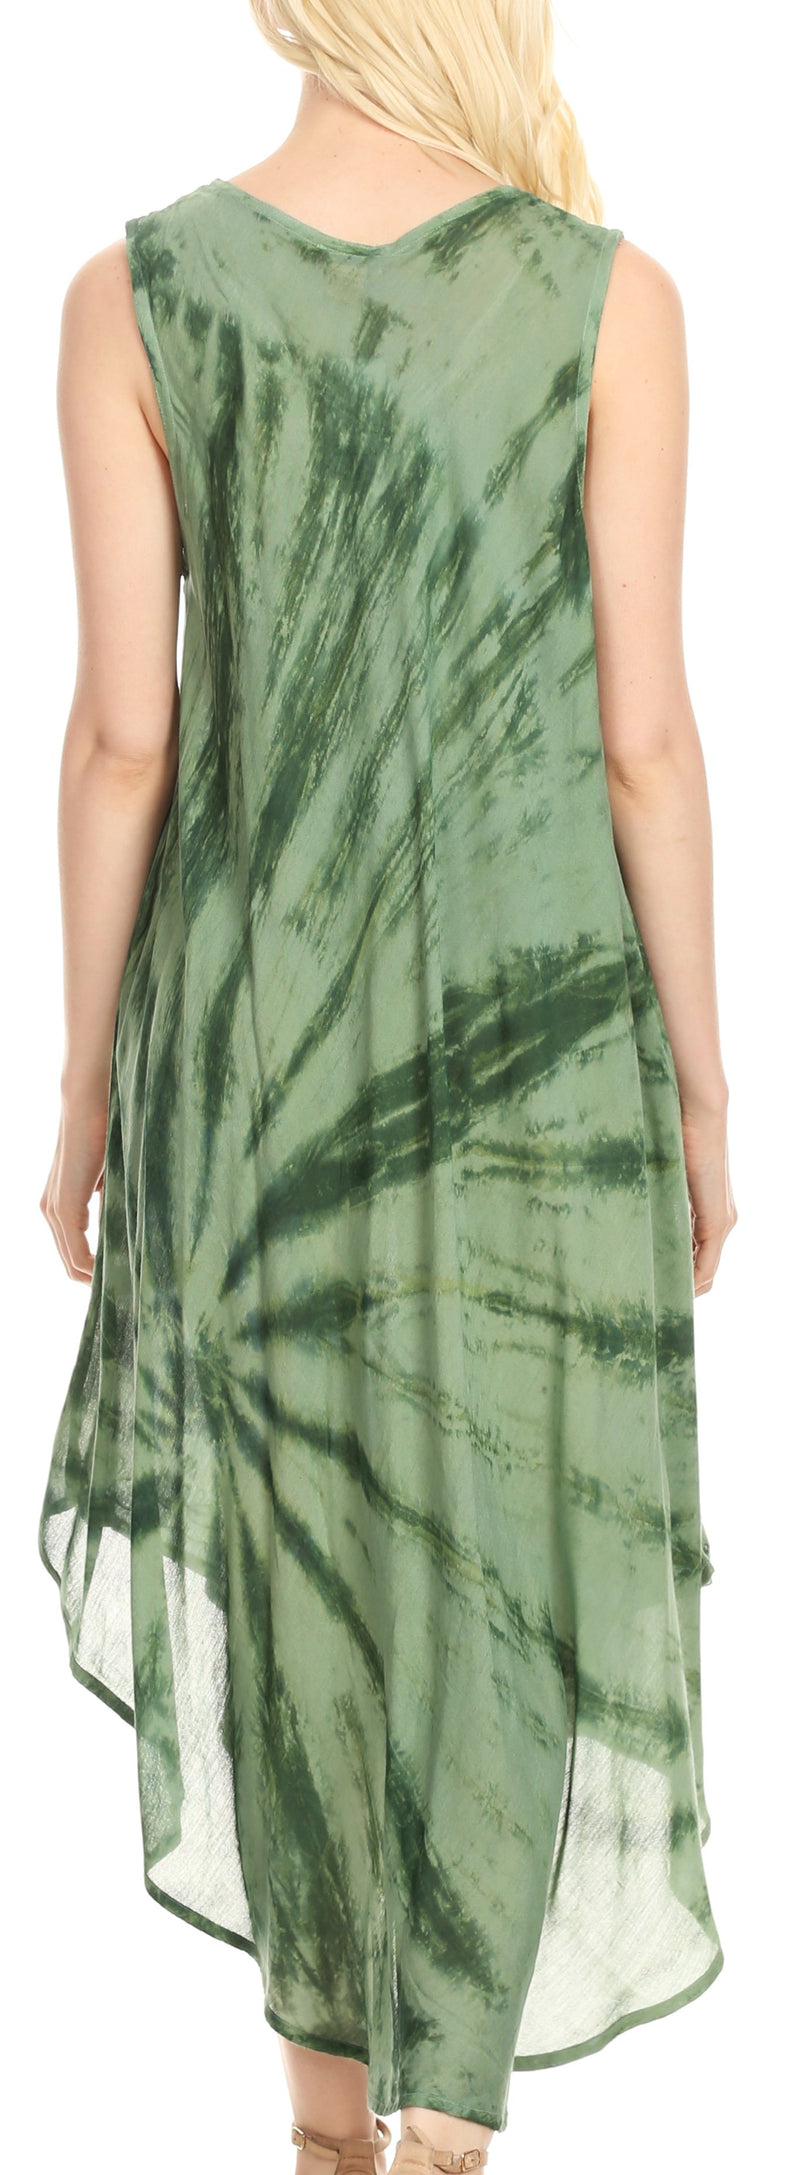 Sakkas Tia Women's Casual Summer Maxi Loose Fit Sleeveless Tank Dress Cover-up